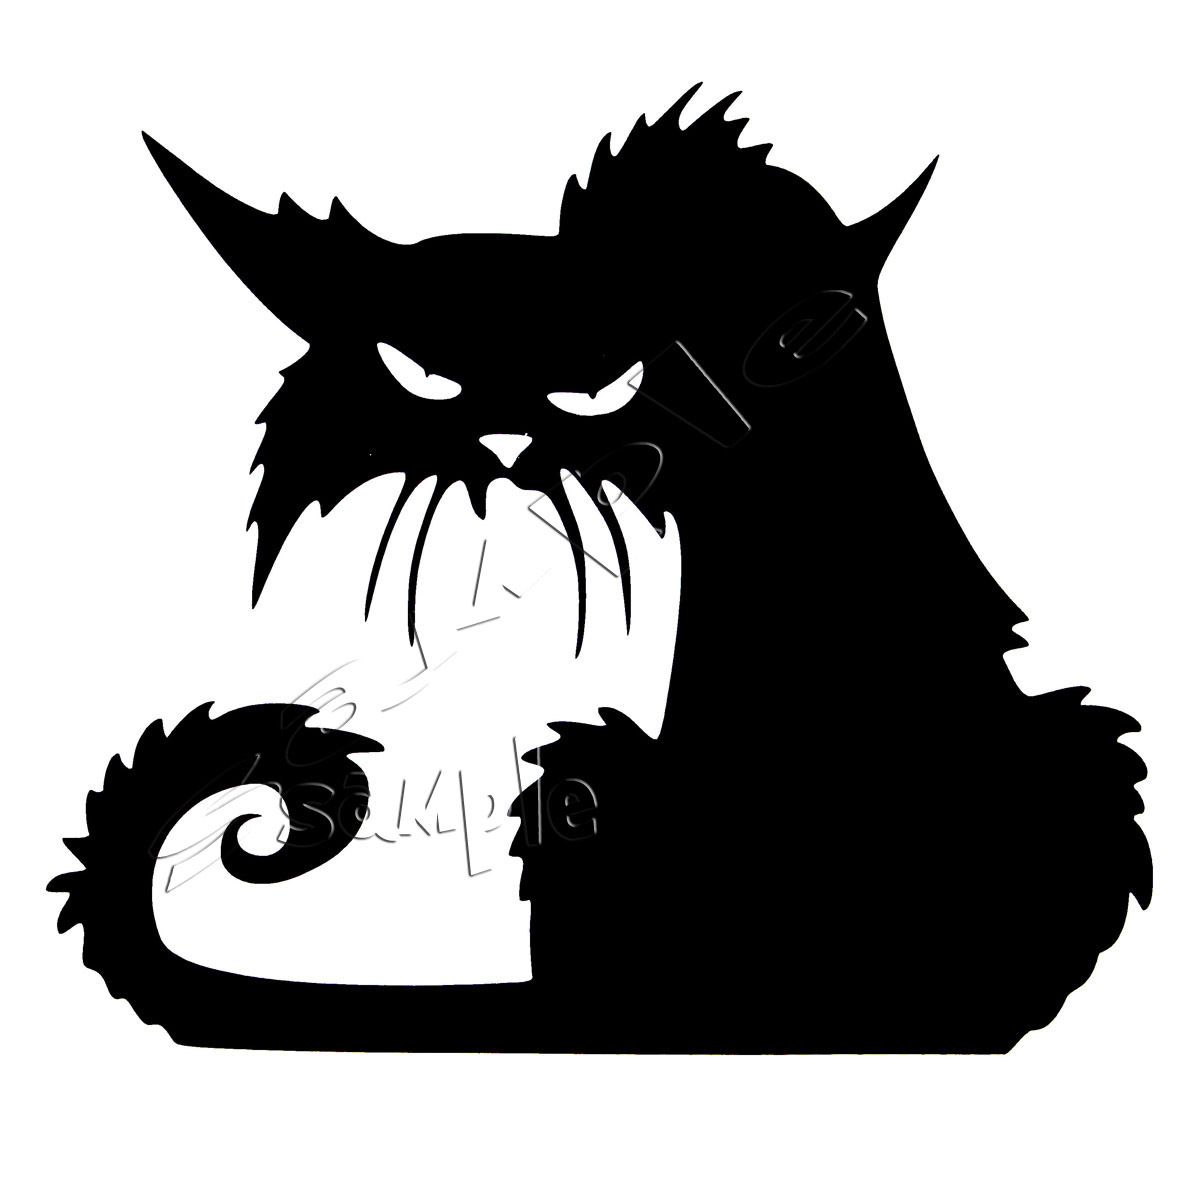 Blank Apparels wholesale Vinyl Decals ✽ Support Small Businesses - Window Halloween Decorations